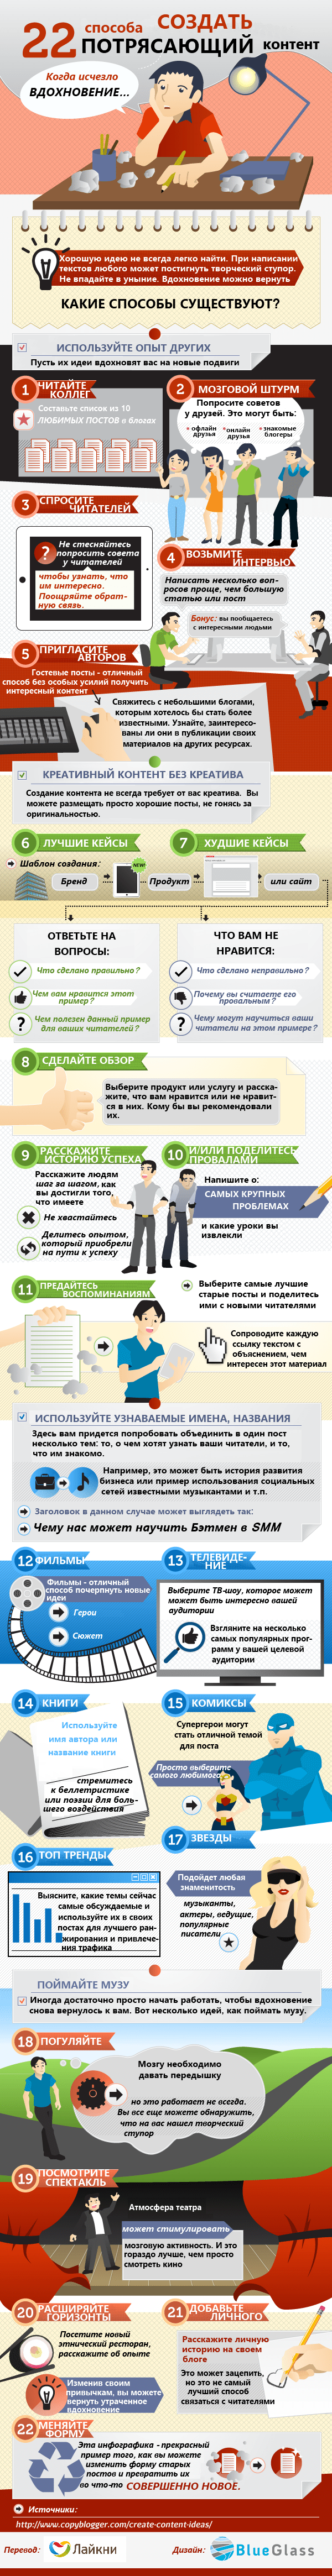 14-primerov-infografiki-po-kontent-marketingu_12